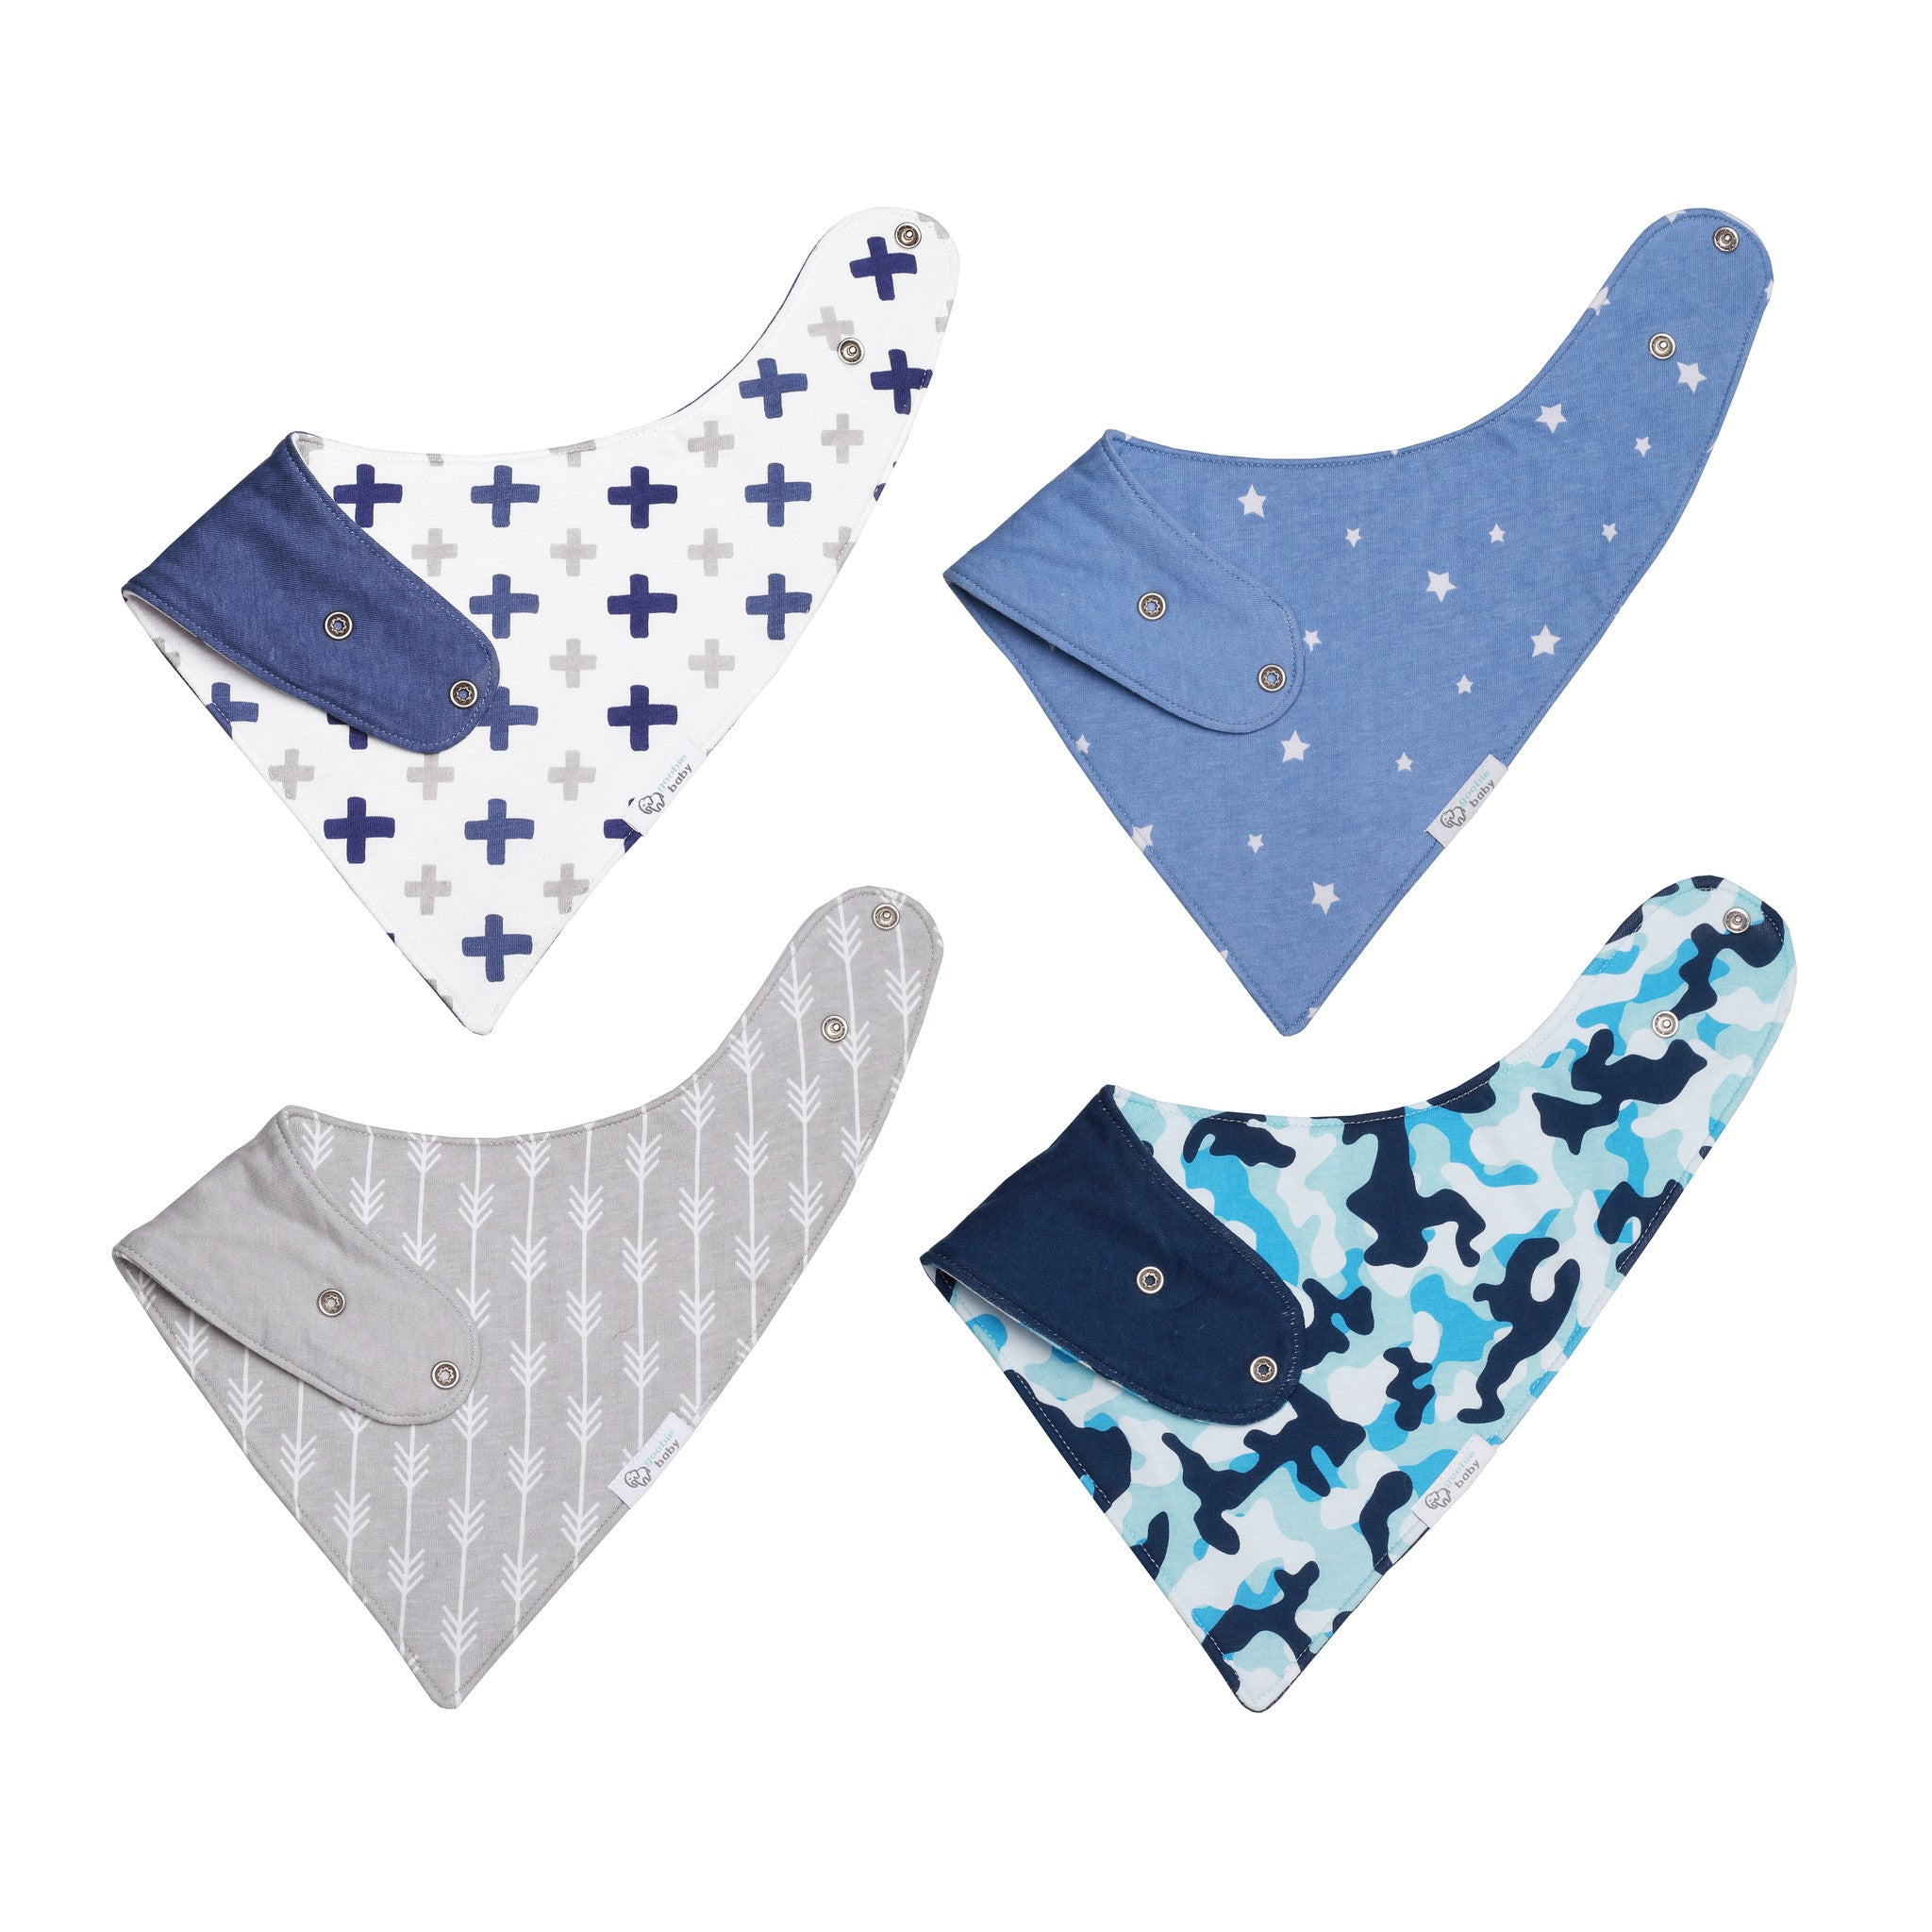 Reversible & Waterproof Cotton Baby Bandana Drool Bibs - Blue/Grey Camo